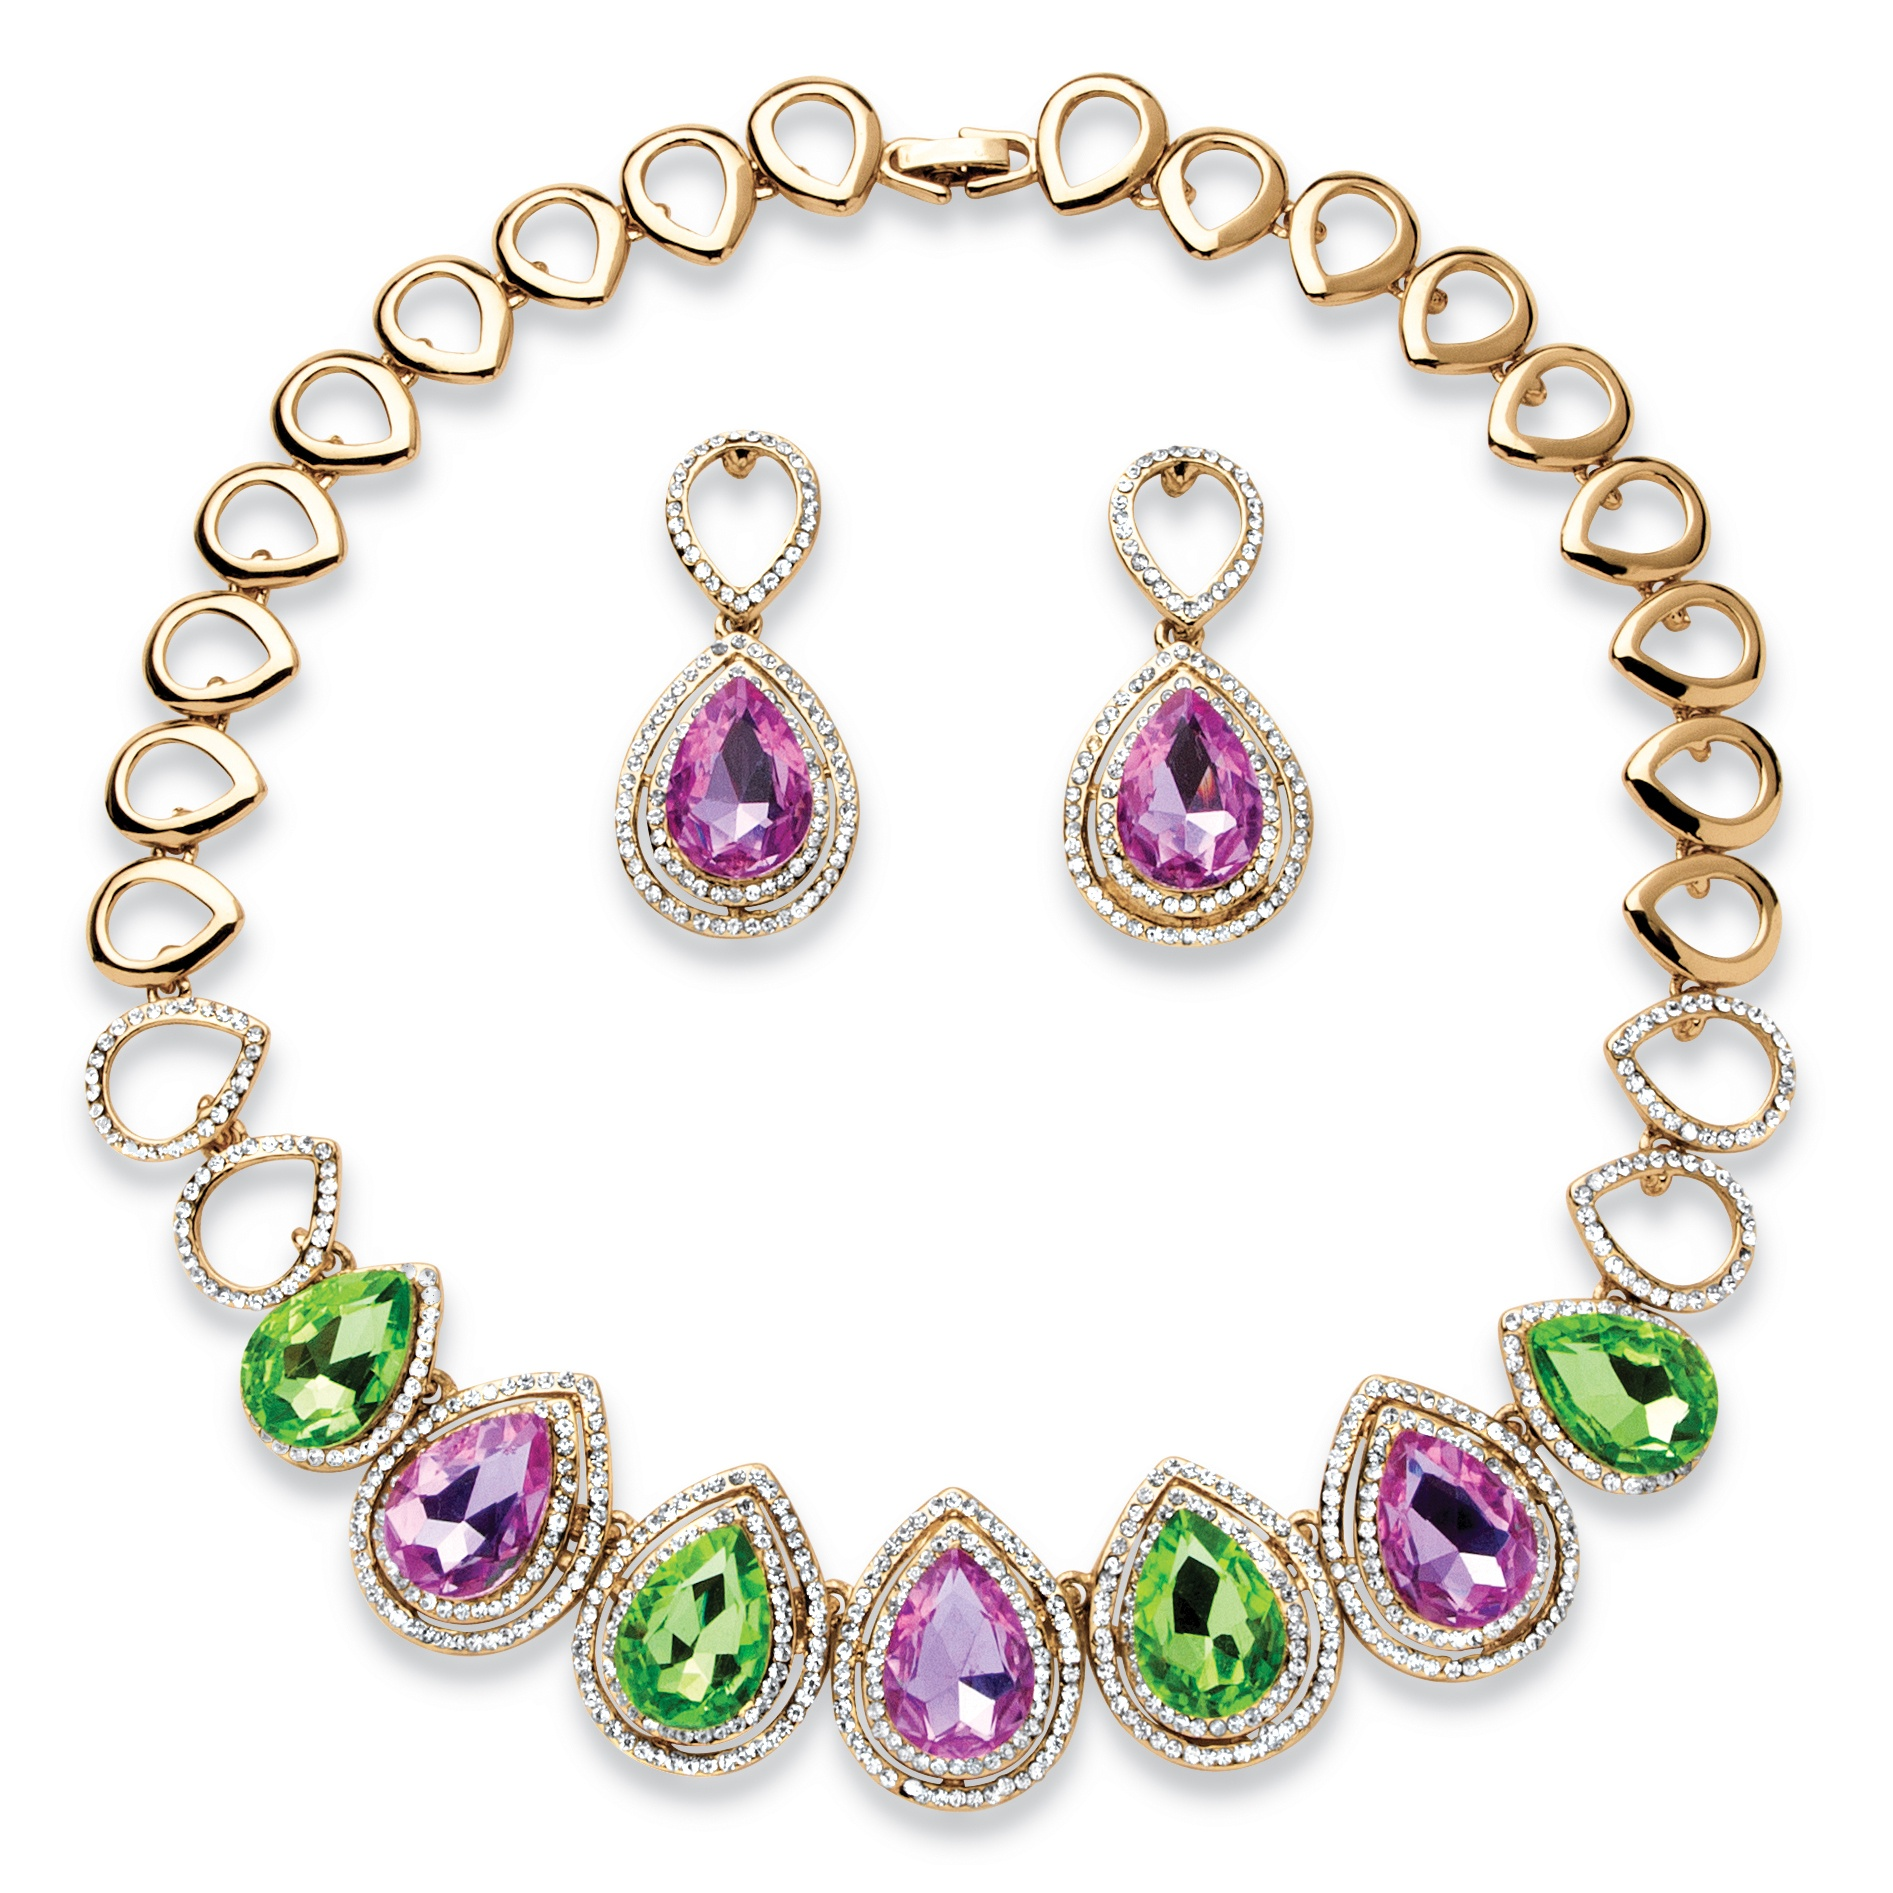 Pear-Cut Lavender and Green Crystal Double Halo Necklace and Earrings Set in Gold Tone